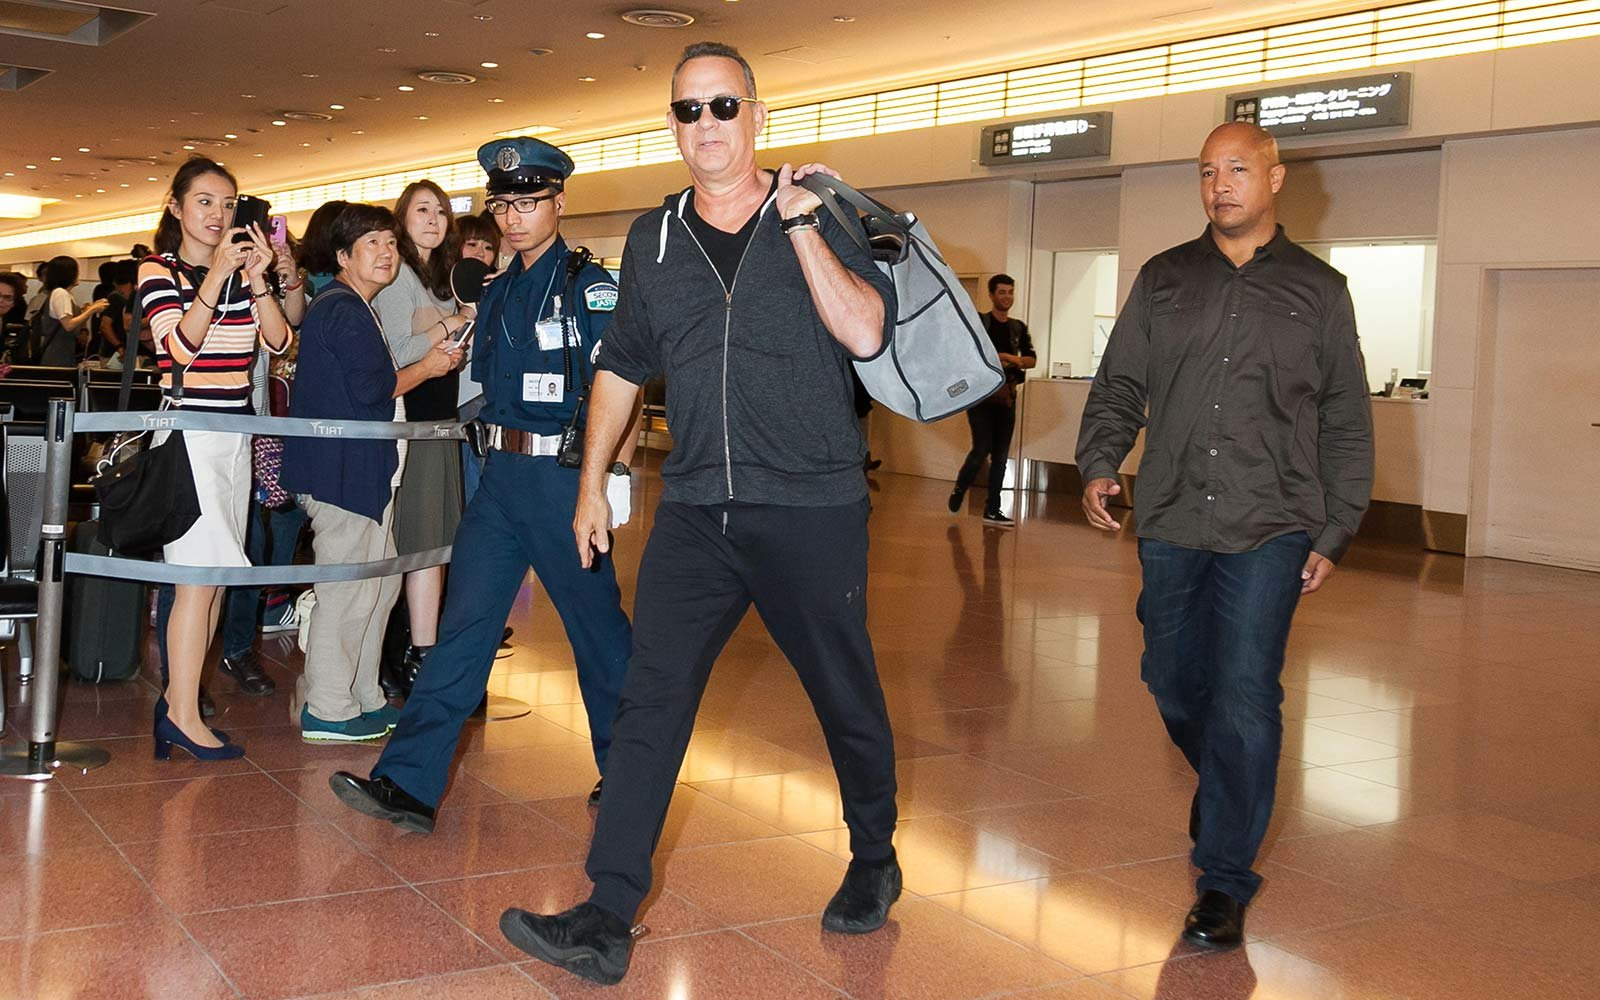 Tom Hanks Travel Obamas Oprah Winfrey Vacation